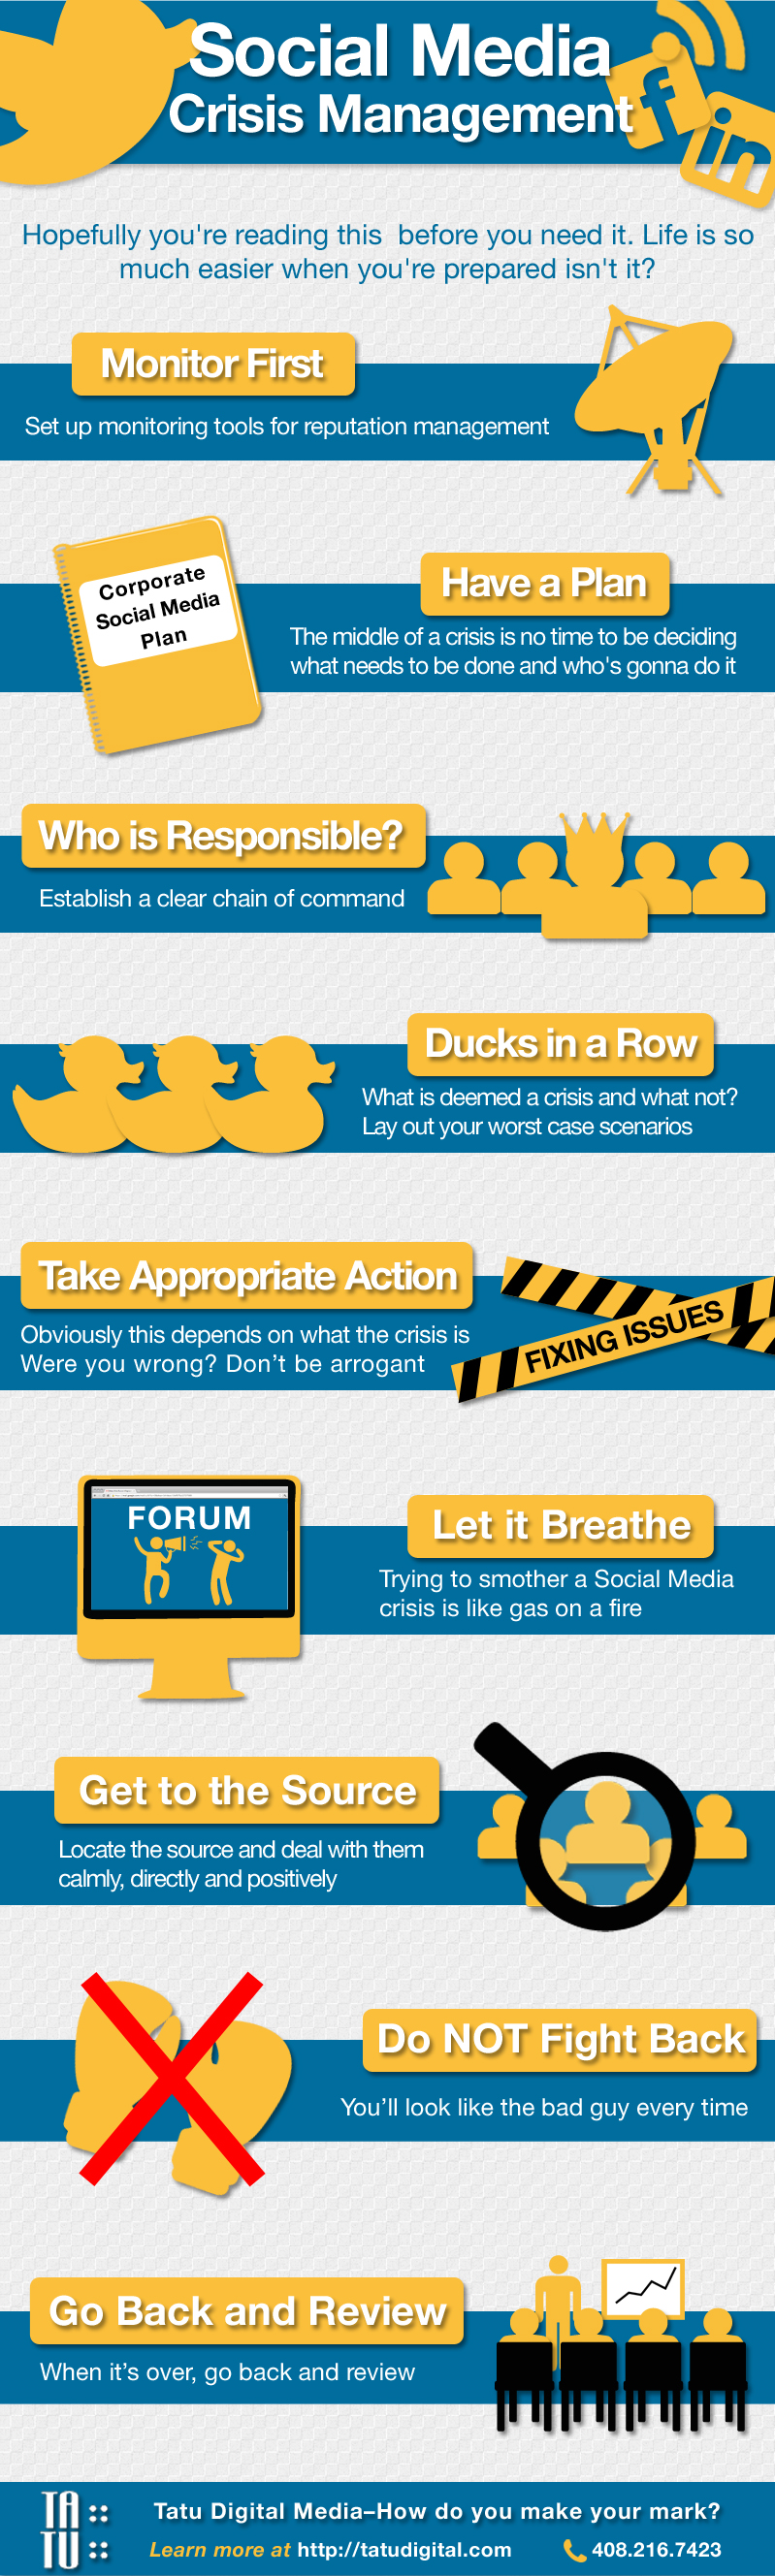 Social Media Crisis Management (Infographic) image Social media infographic proof 2